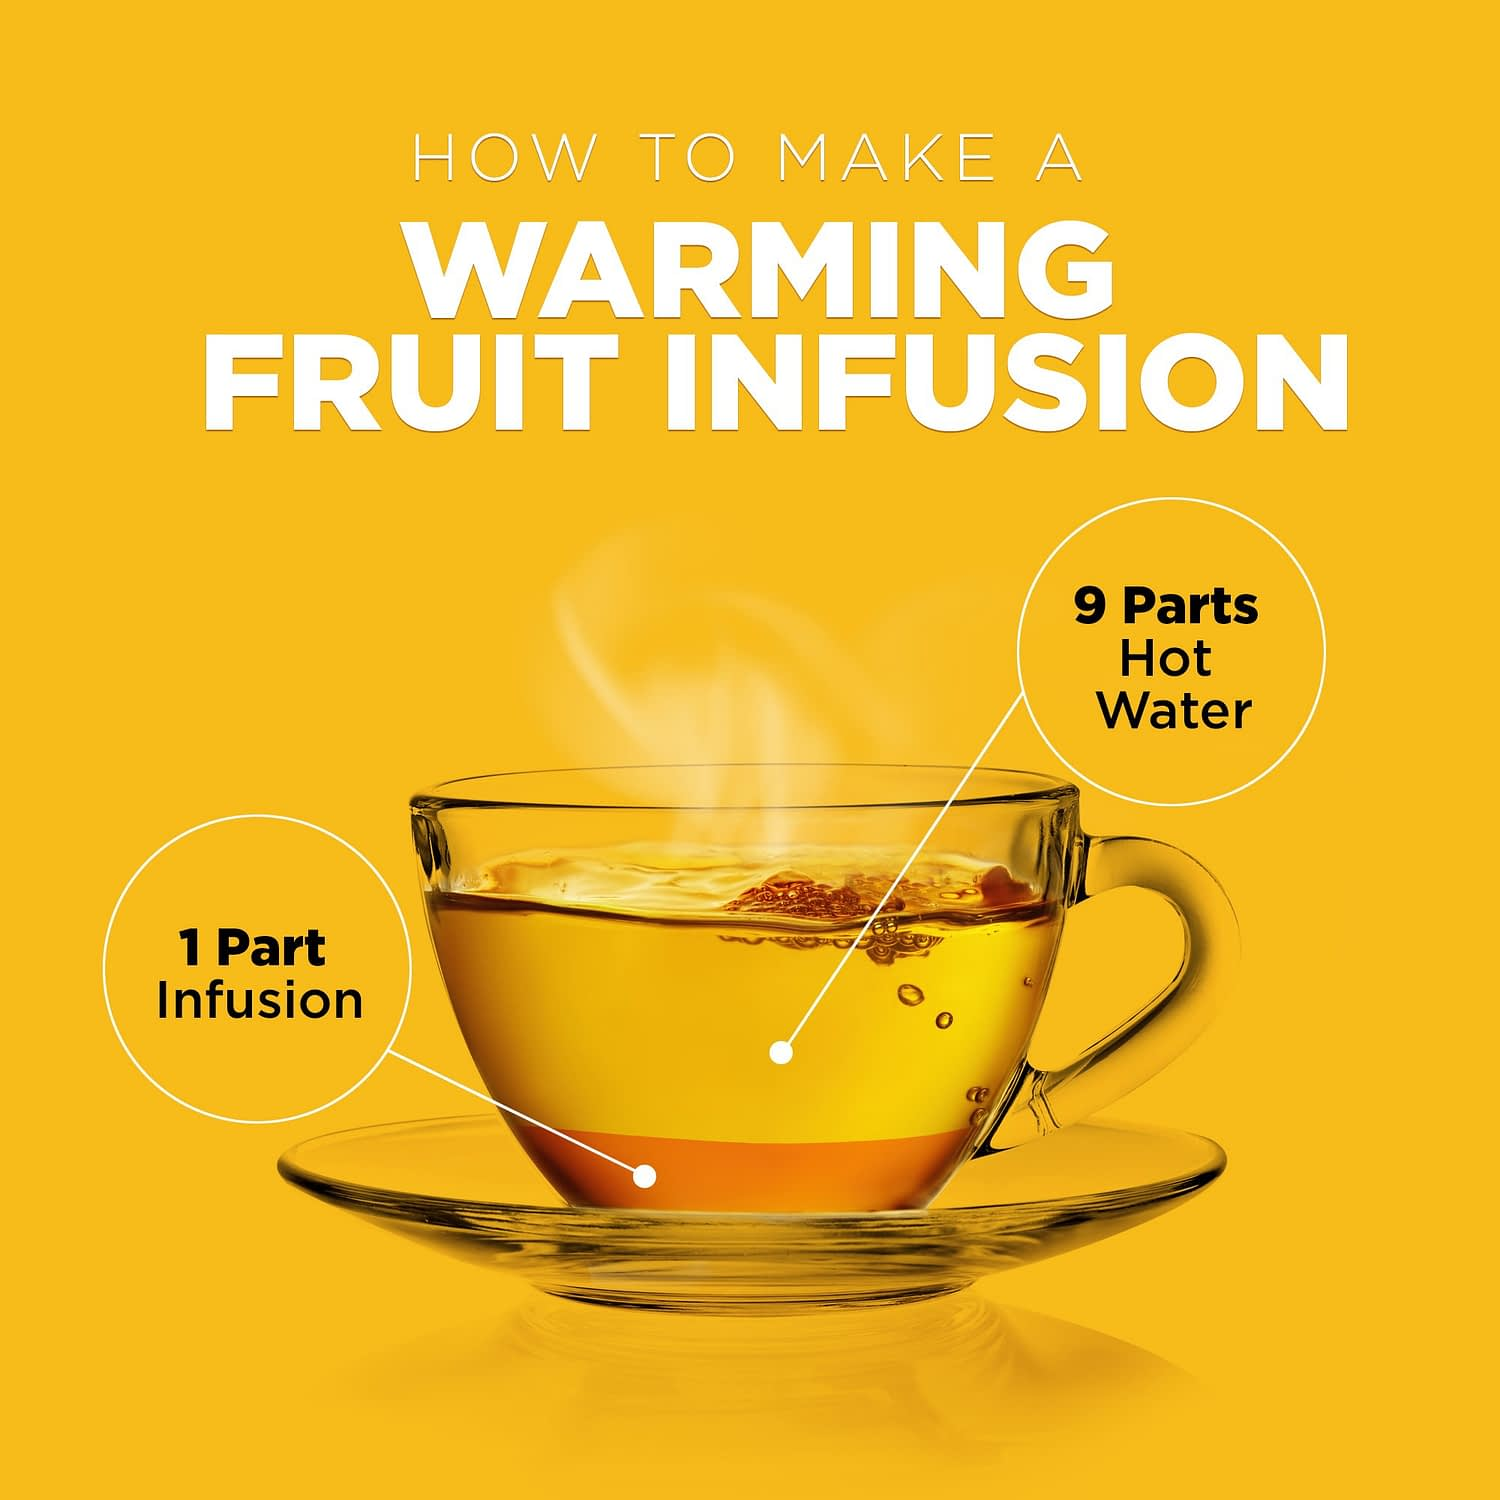 How_to_make_warming_fruit_infusion